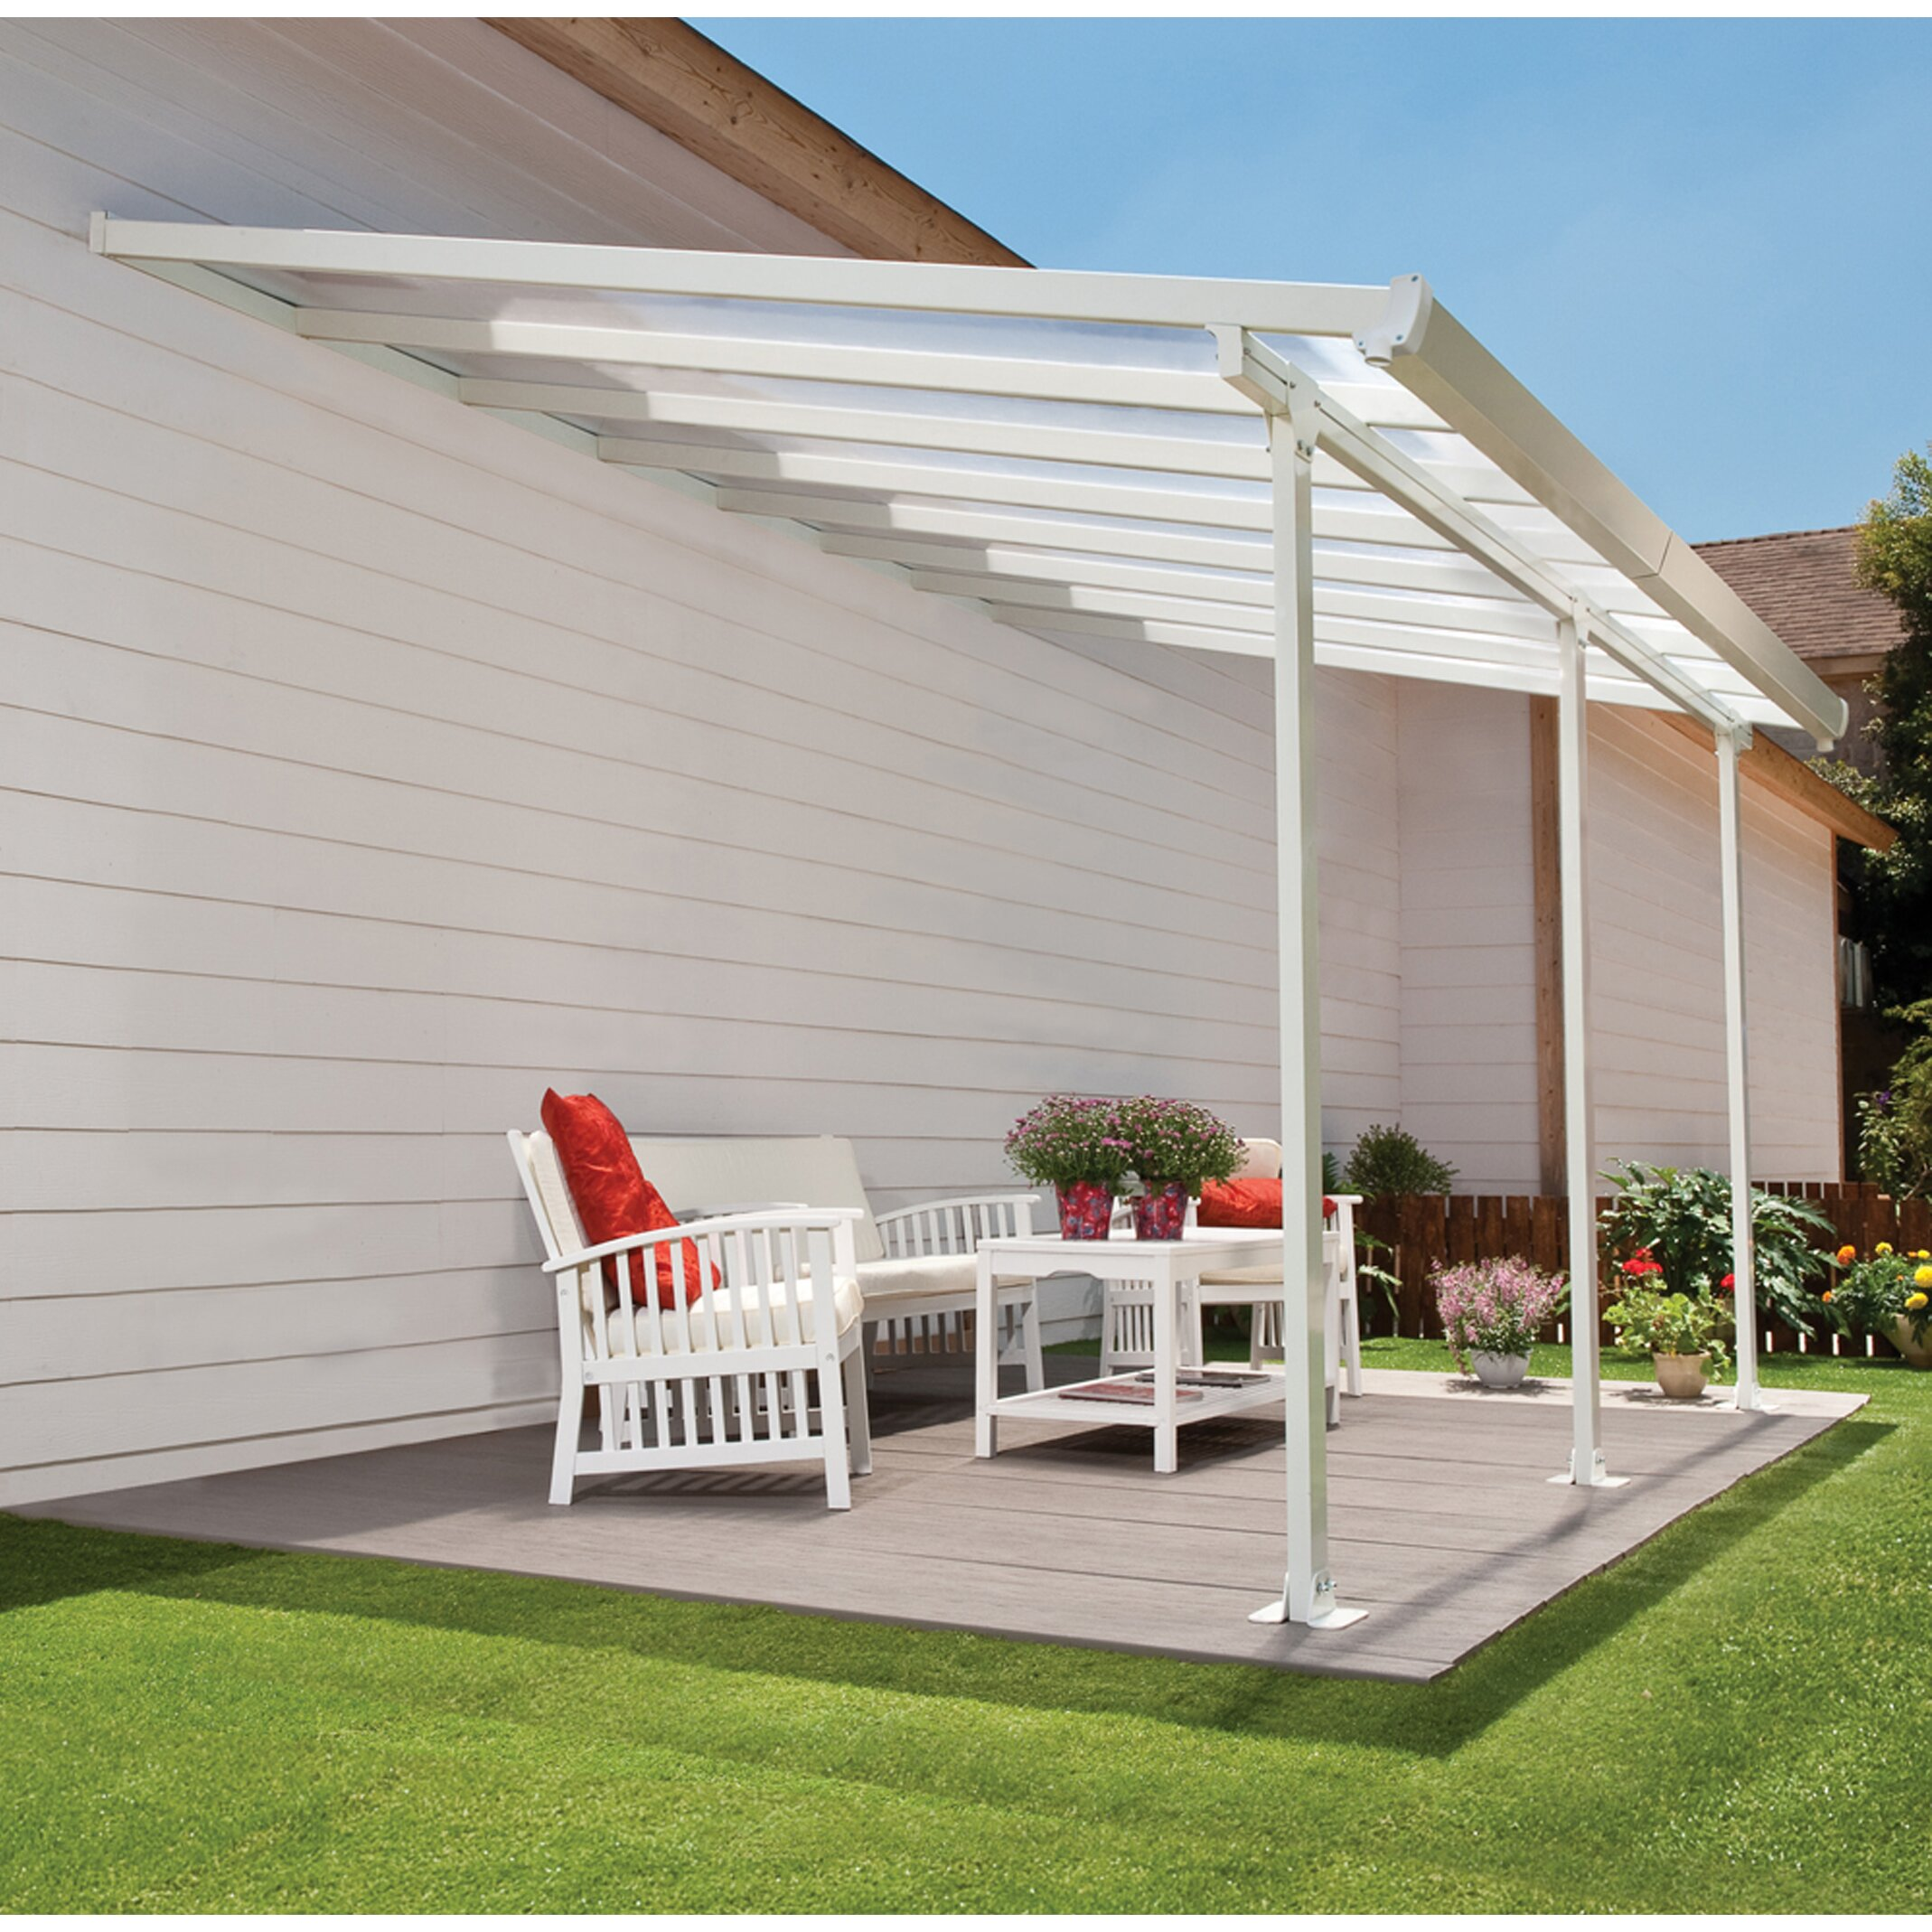 Feria™ 10ft. H X 26ft. W X 13ft. D Patio Cover Awning